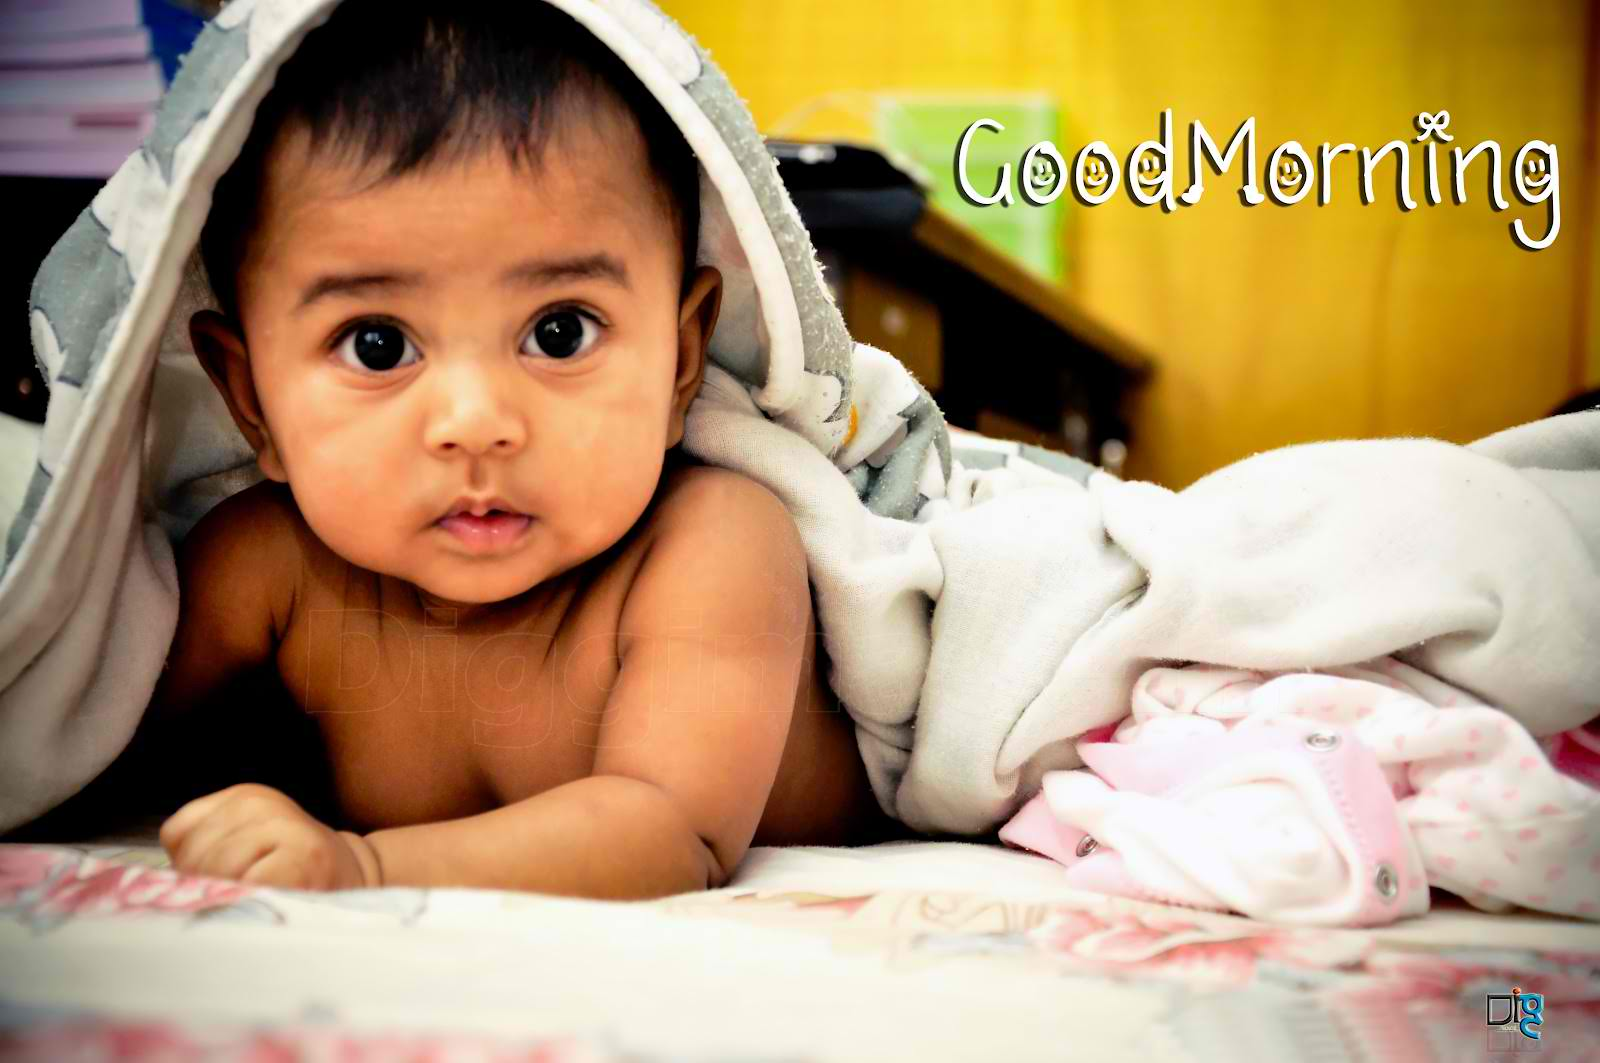 Good morning with baby wg125g good morning wishes with baby pictures images page 22 voltagebd Image collections